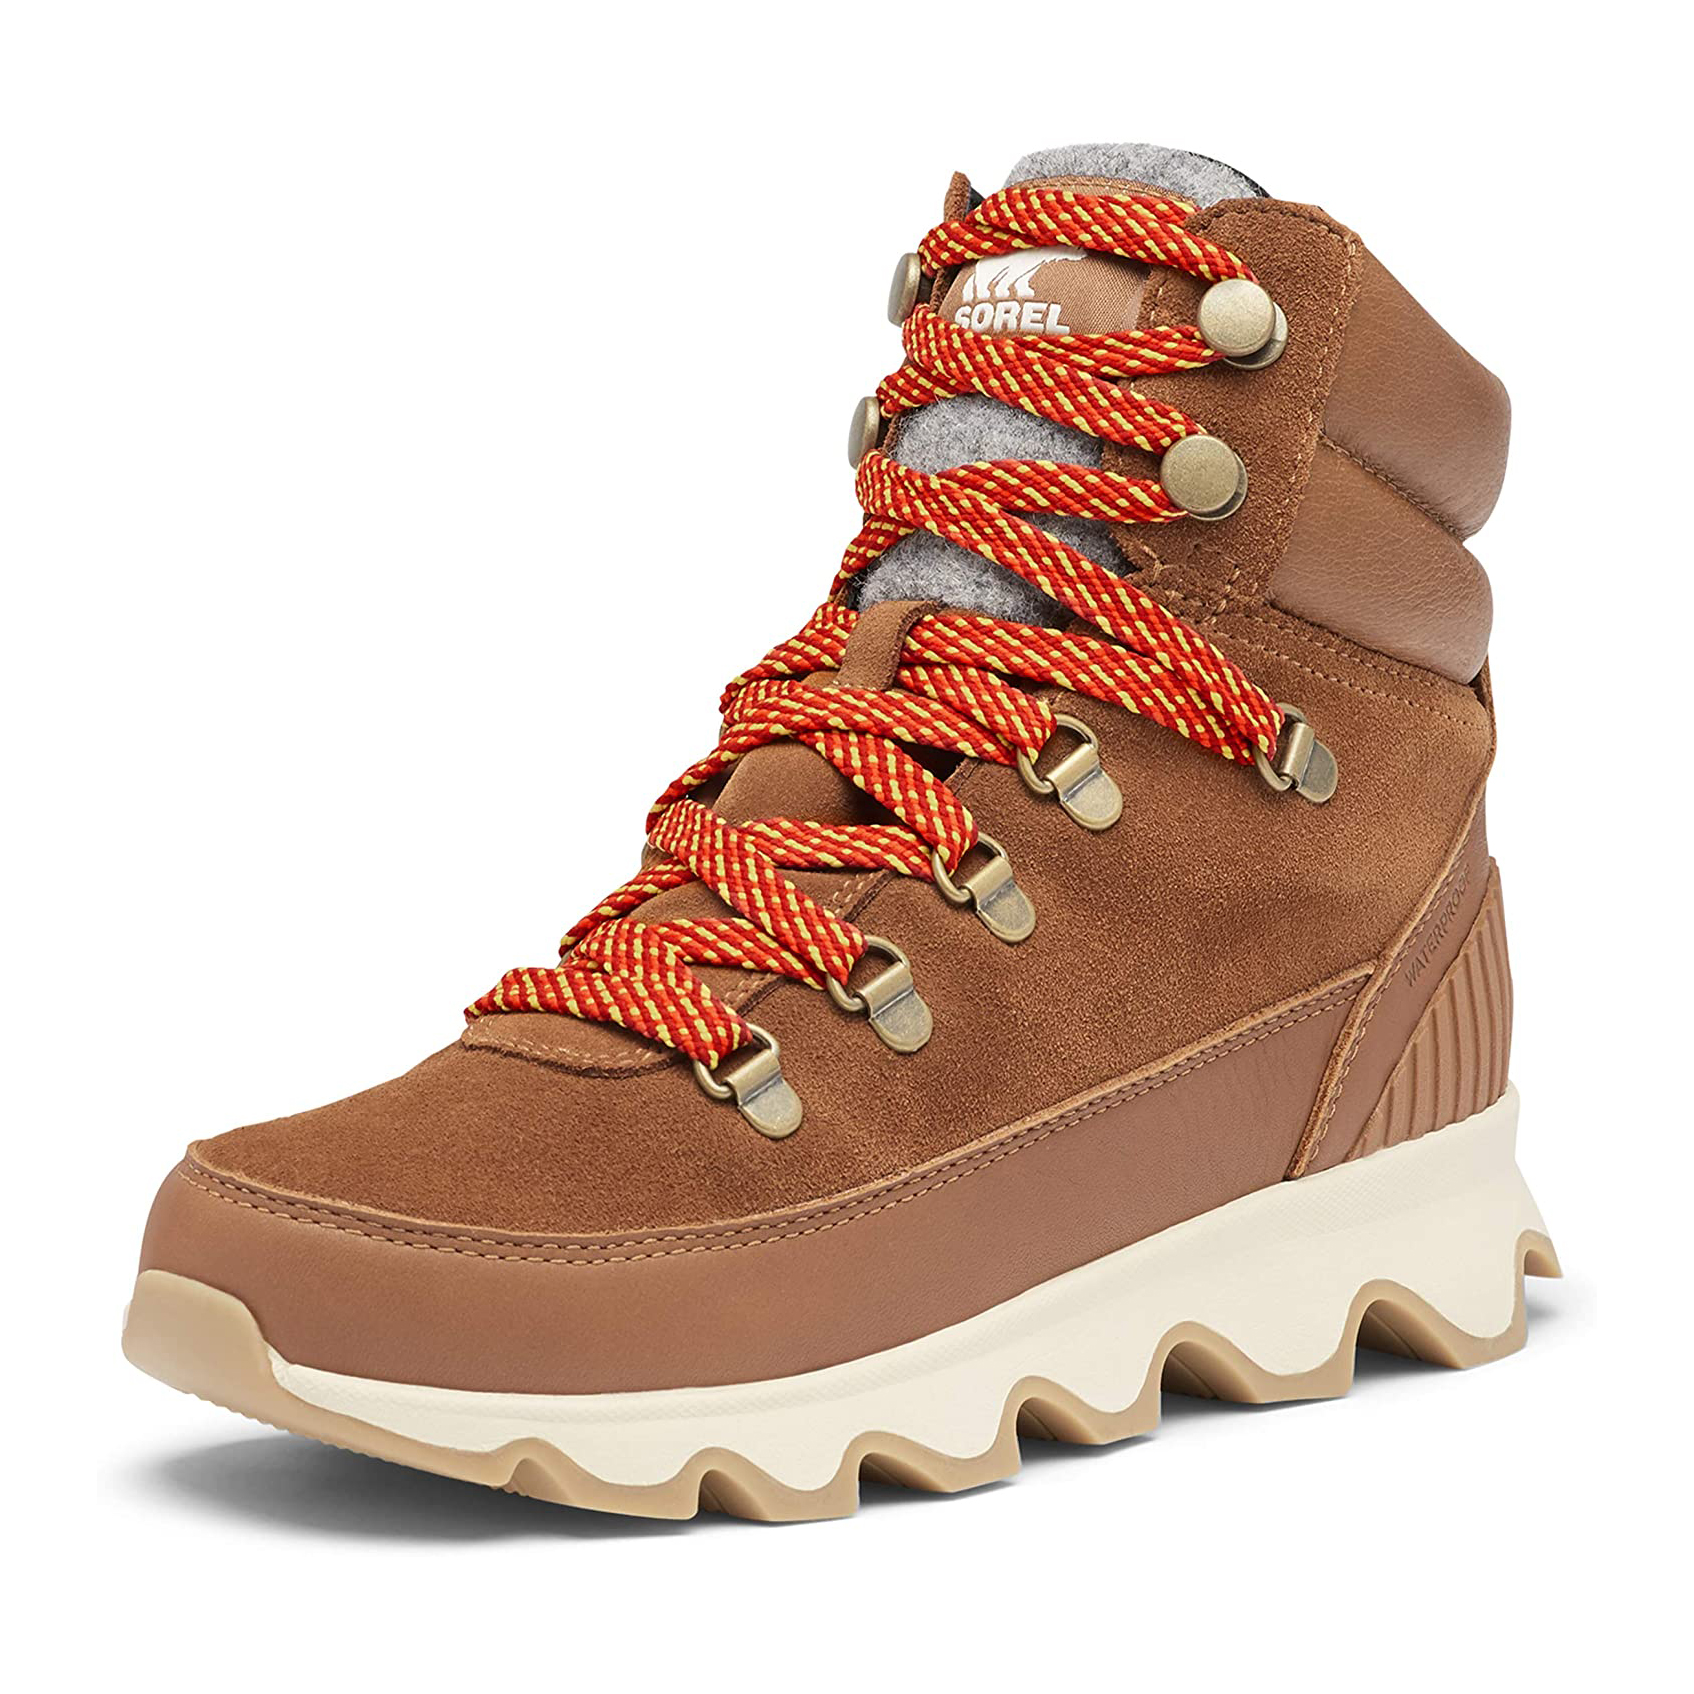 sorel-womens-kinetic-conquest-sneaker